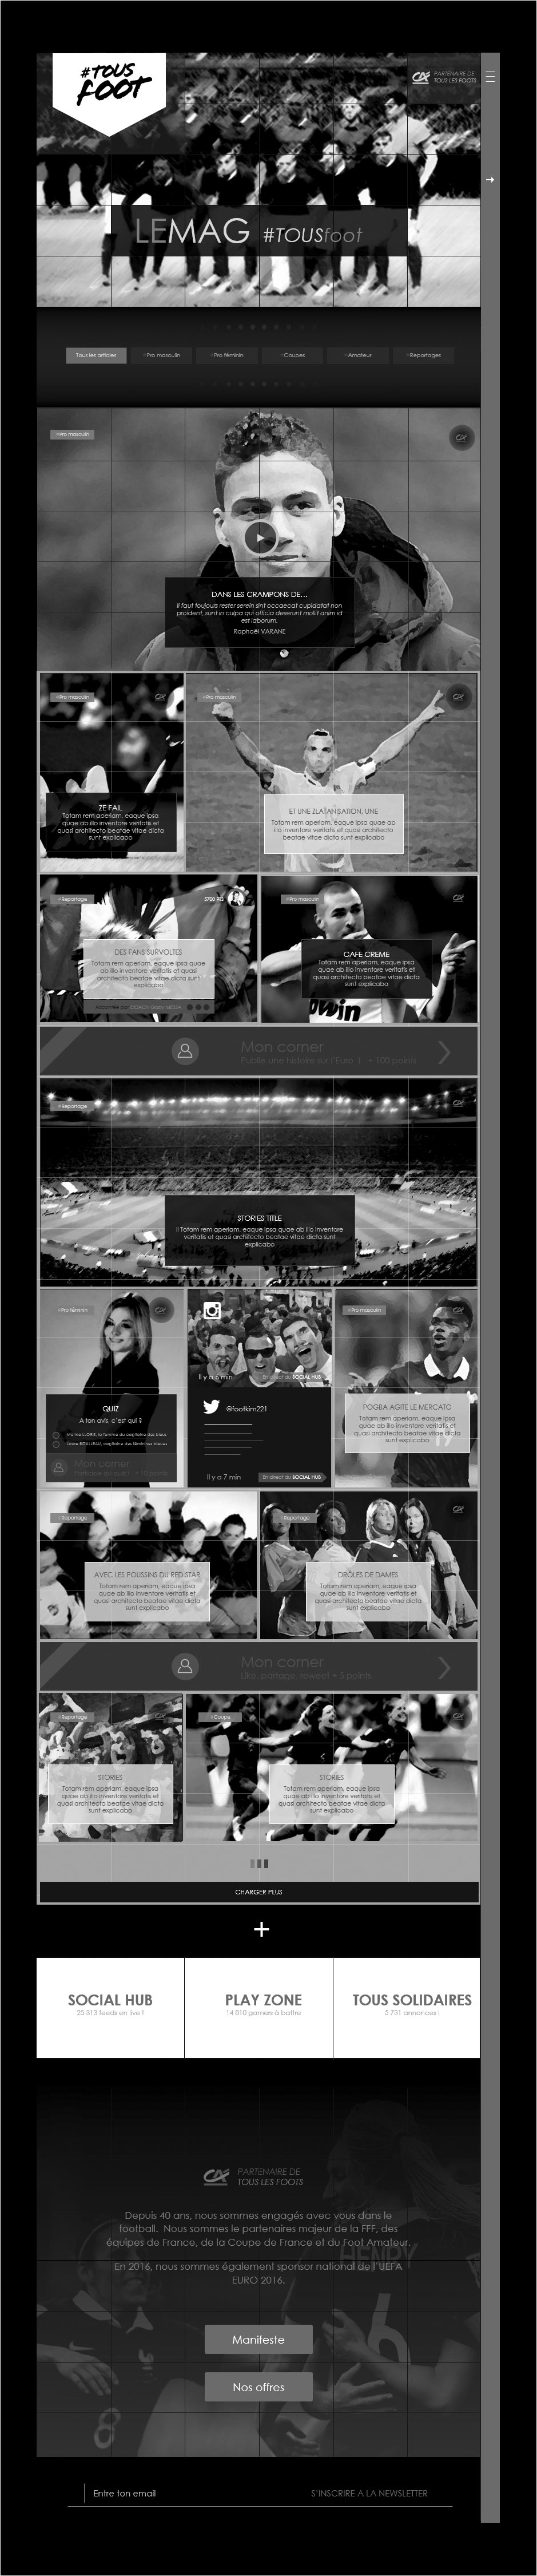 wireframe magazine euro 2016 tous foot credit agricole